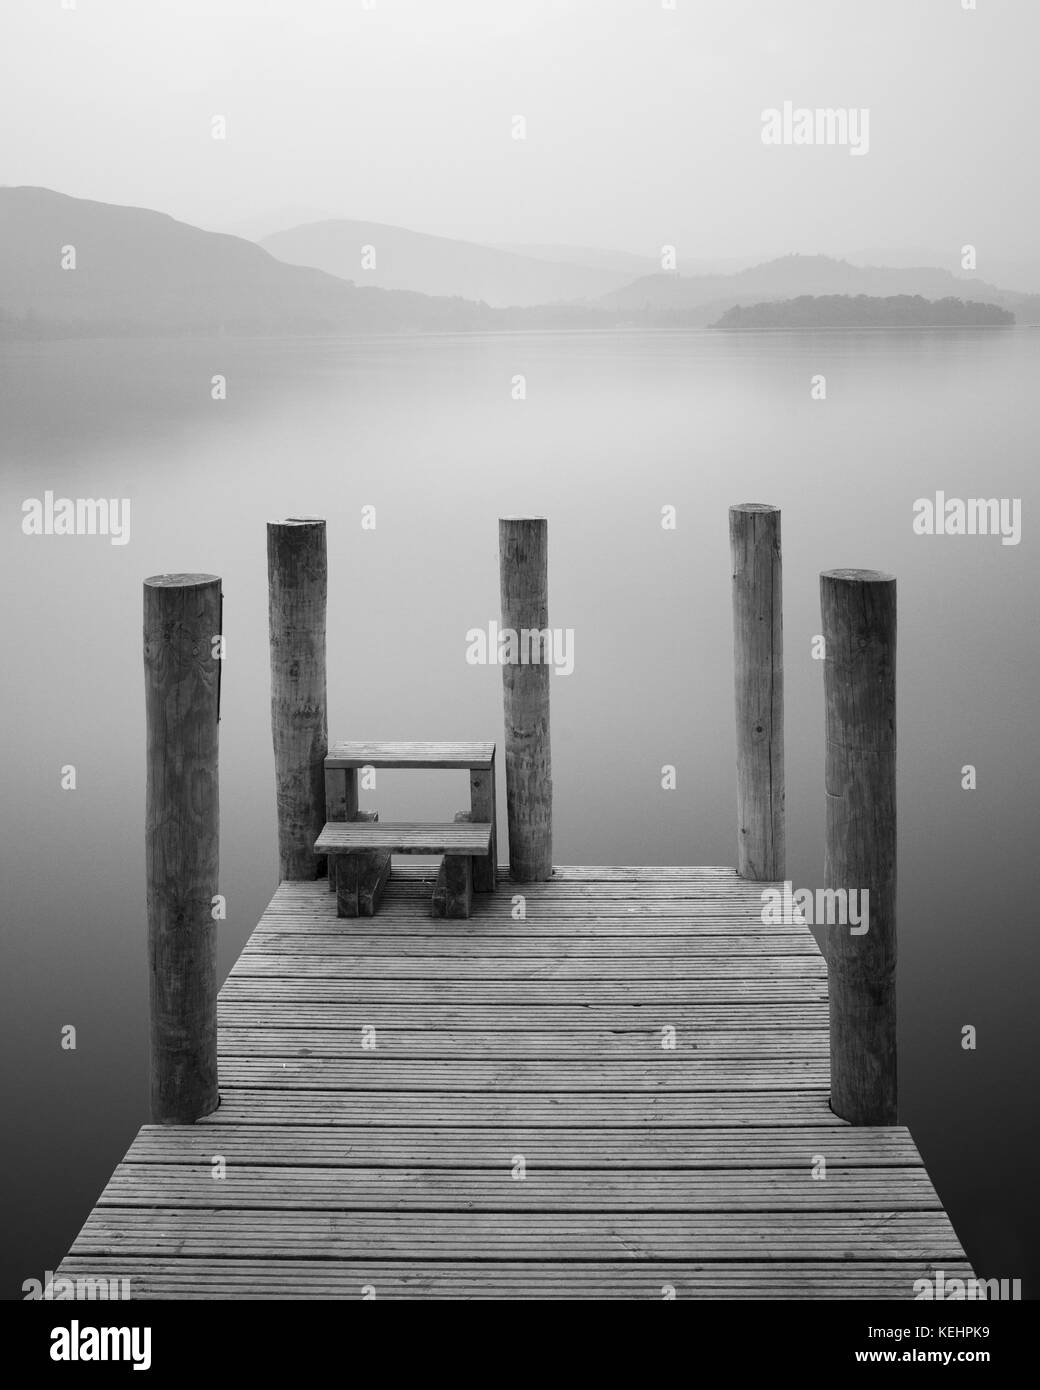 Jetty Pier Boat Landing Derwentwater Foggy Lake District méditation calme paisible Photo Stock